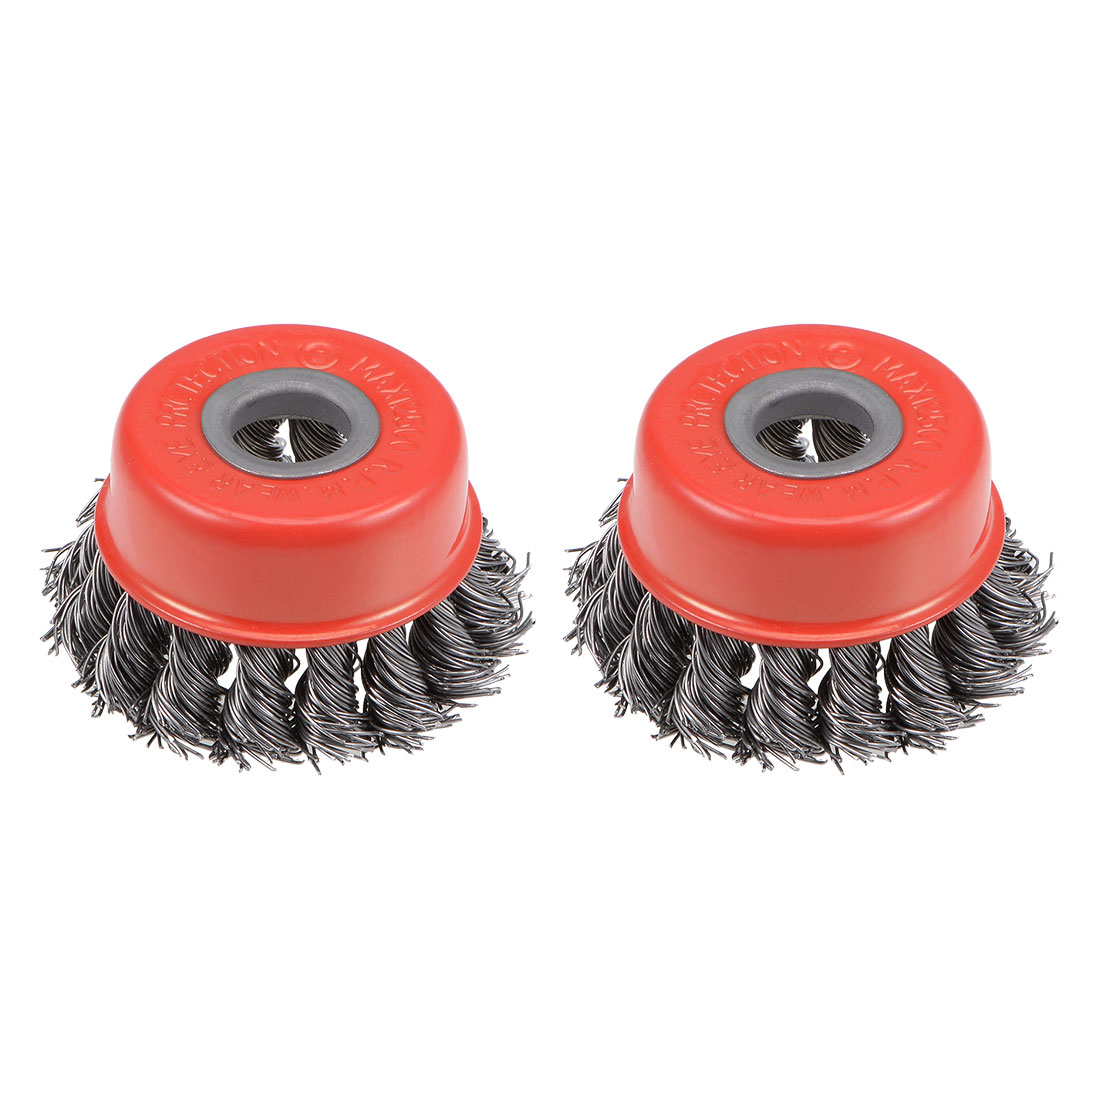 2-1/2-Inch Wire Cup Brush Twist Knotted Crimped Steel with 5/8-Inch Arbor 2 Pcs